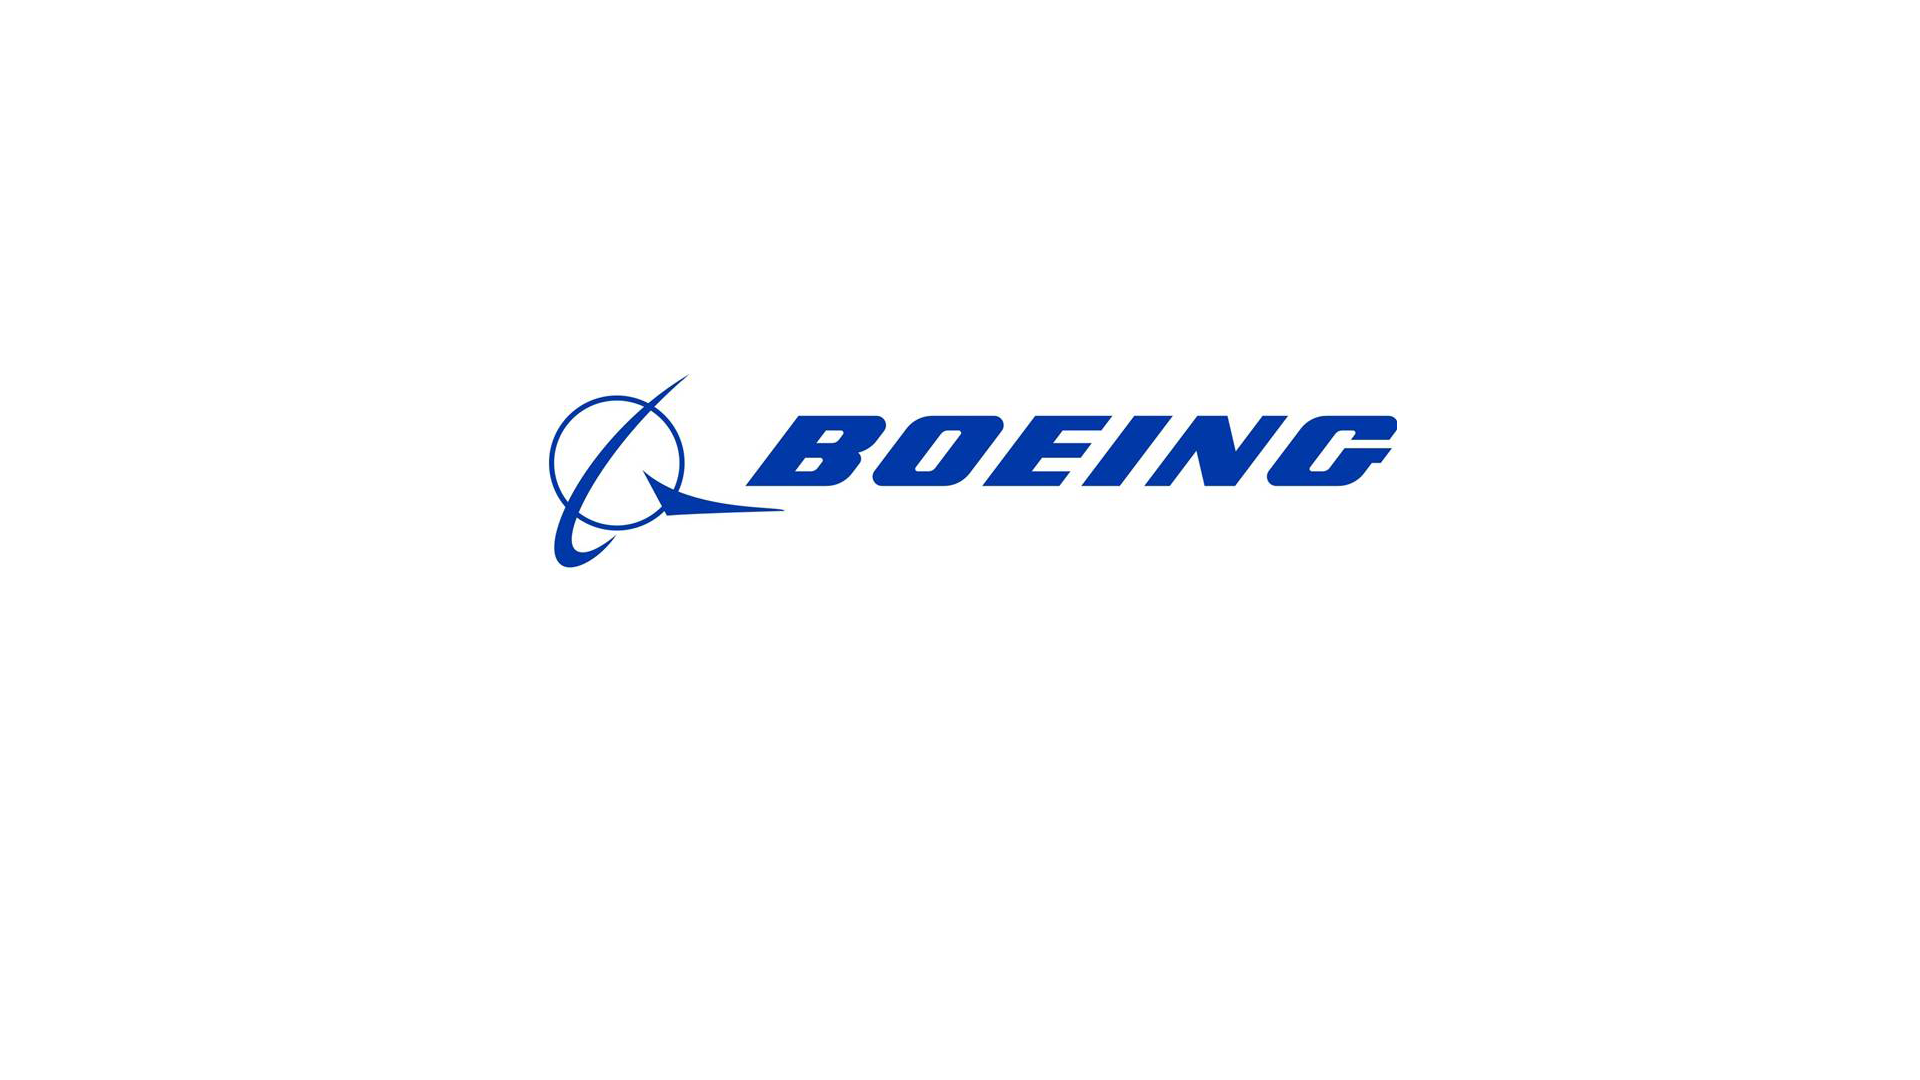 The Story of Boeing